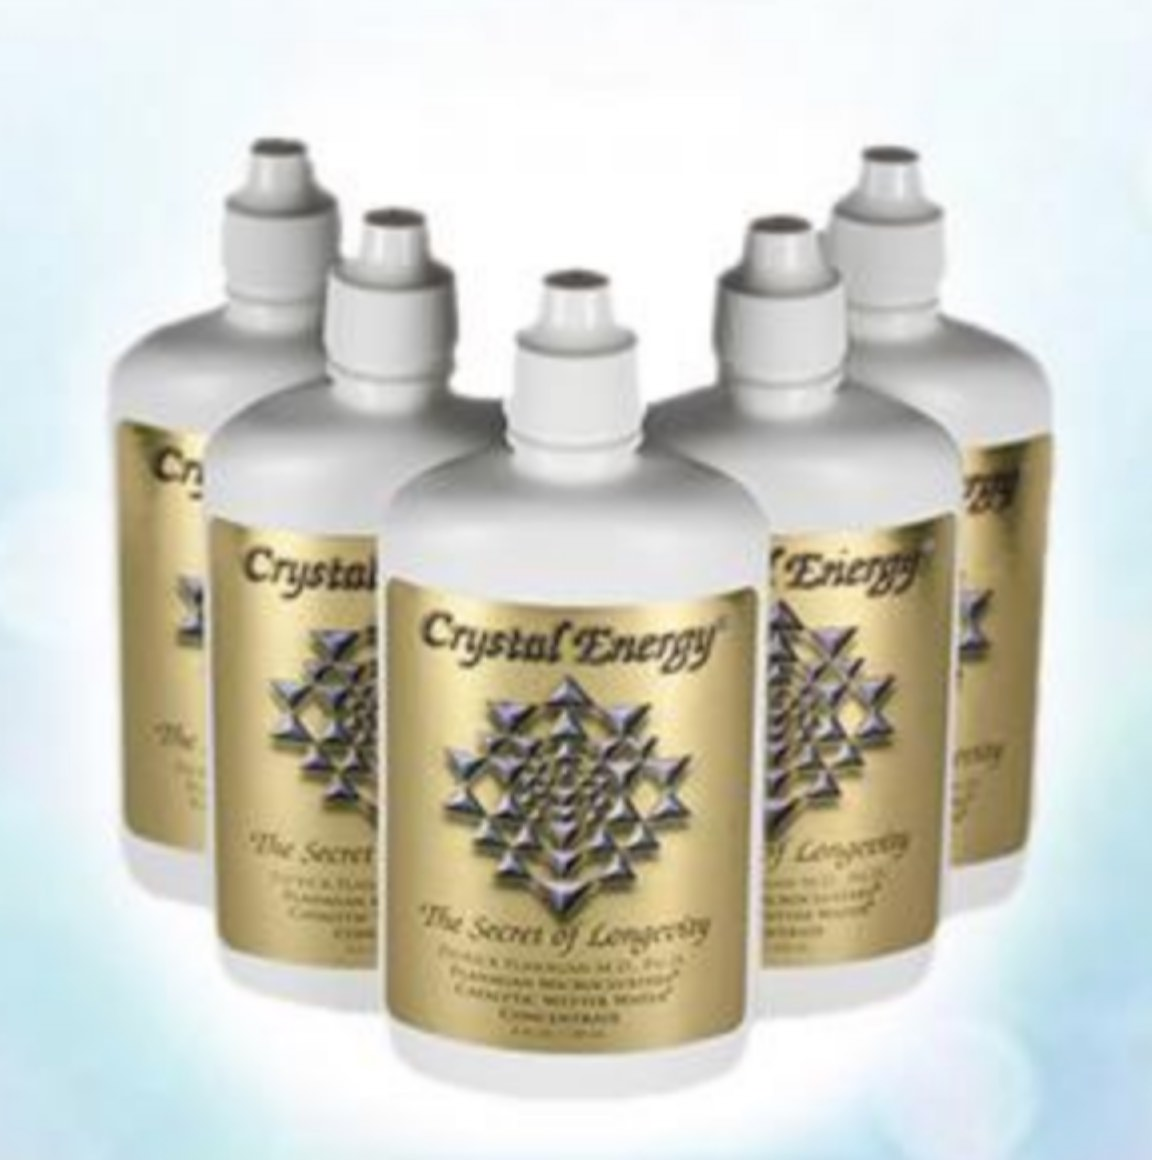 Flanagan's Crystal Energy 5-Pack